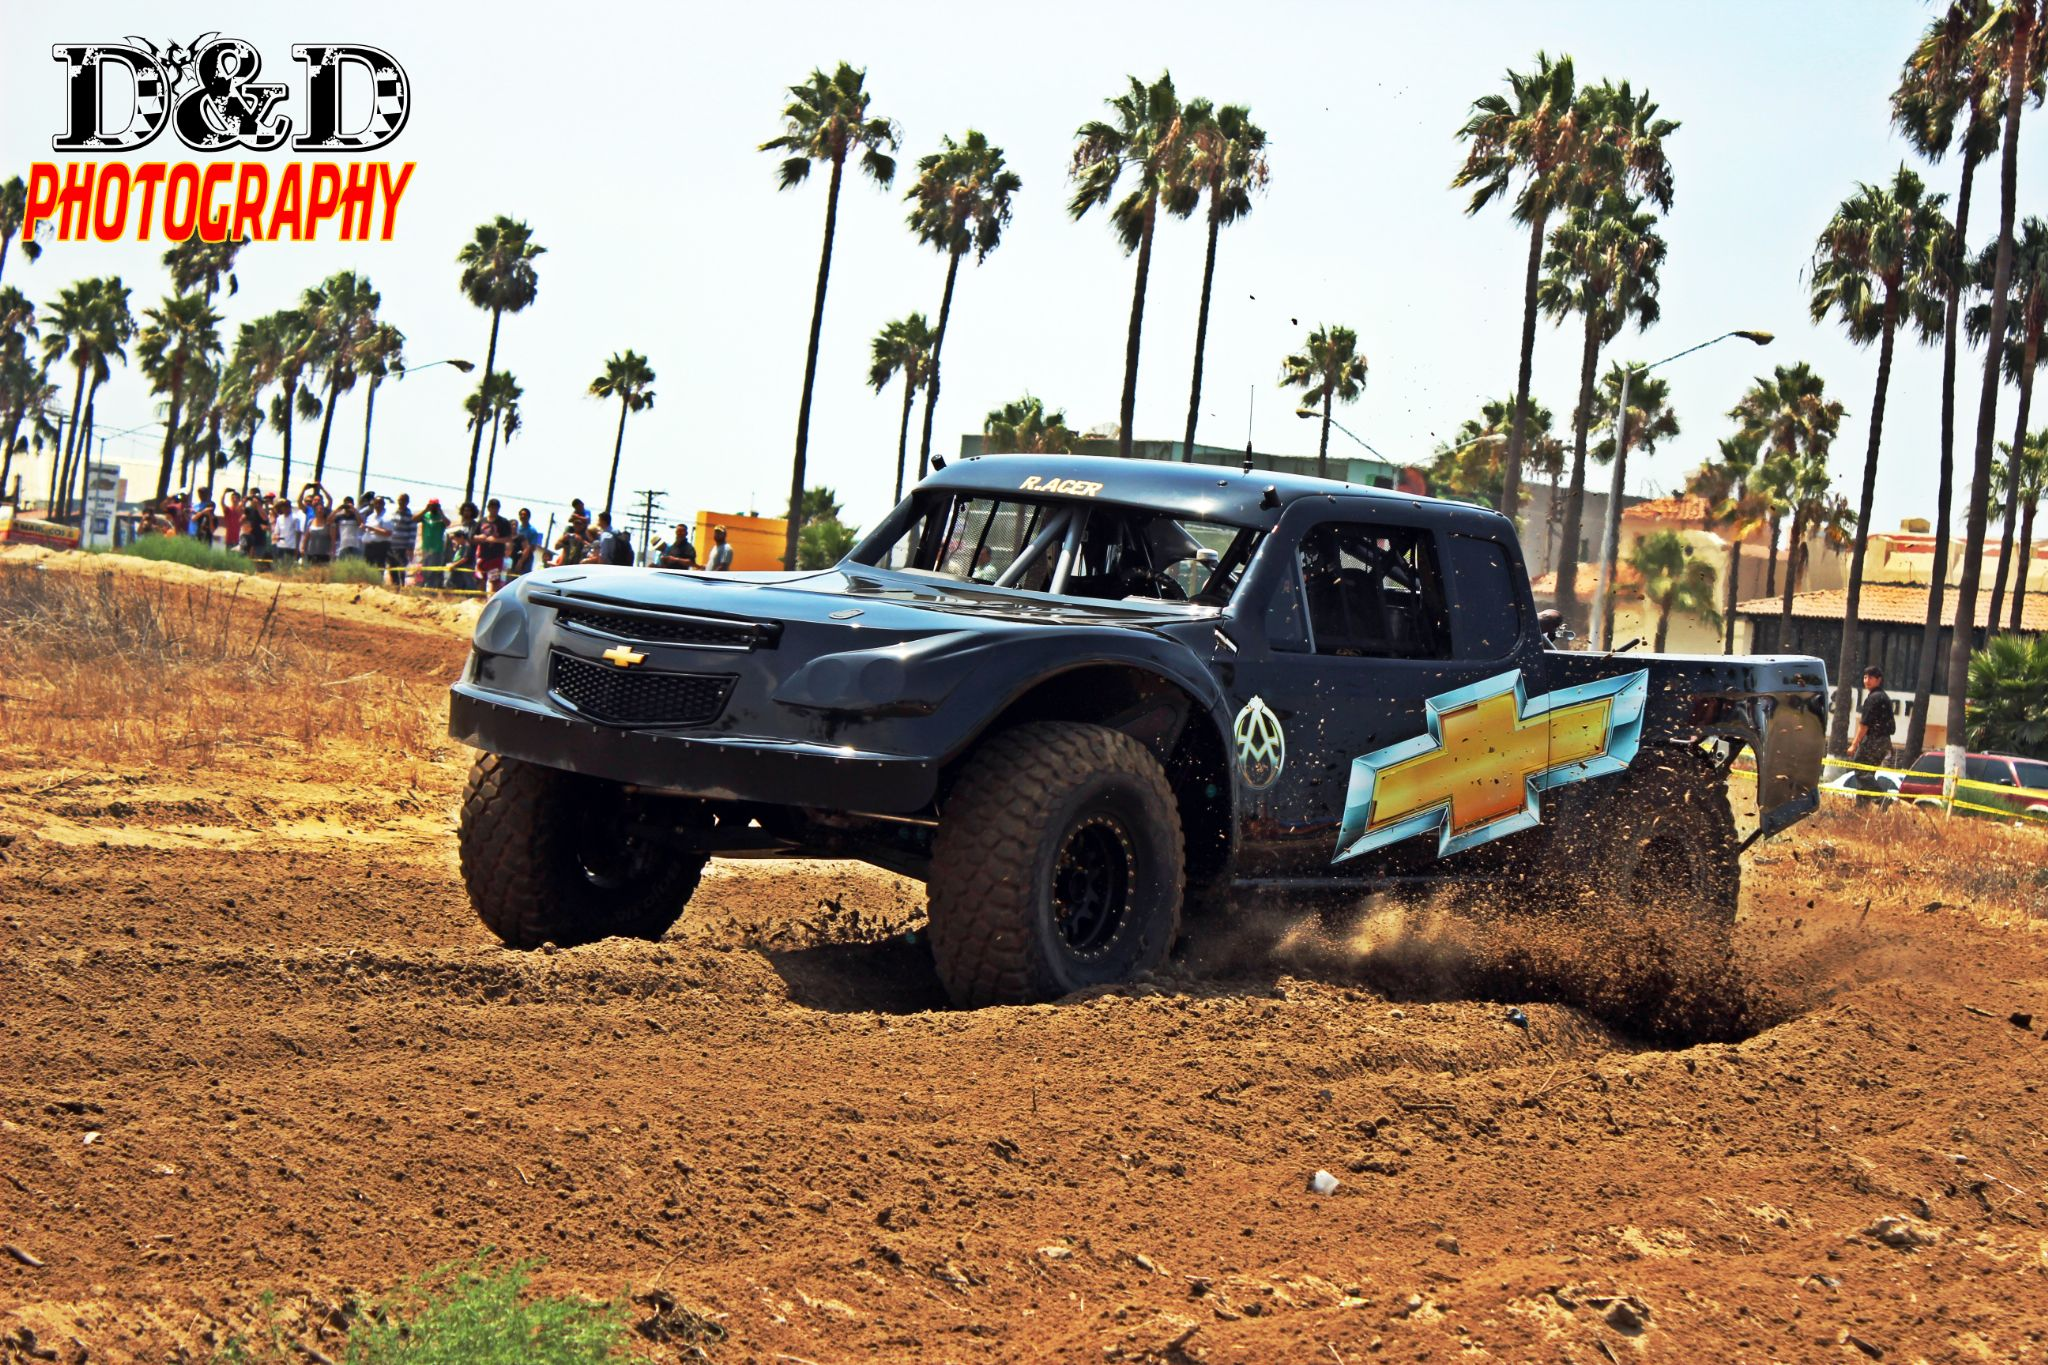 Acer´s Trophy Truck show by Dyd_Photo